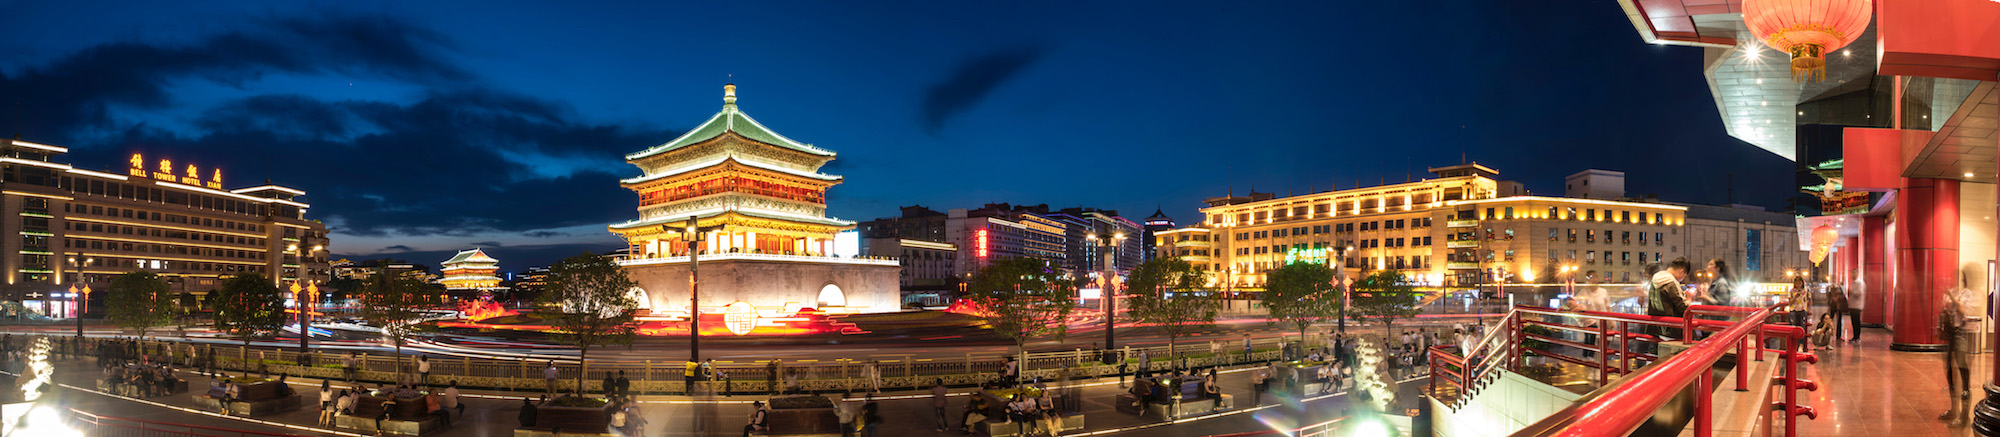 Panorama of Xi'an, China at night